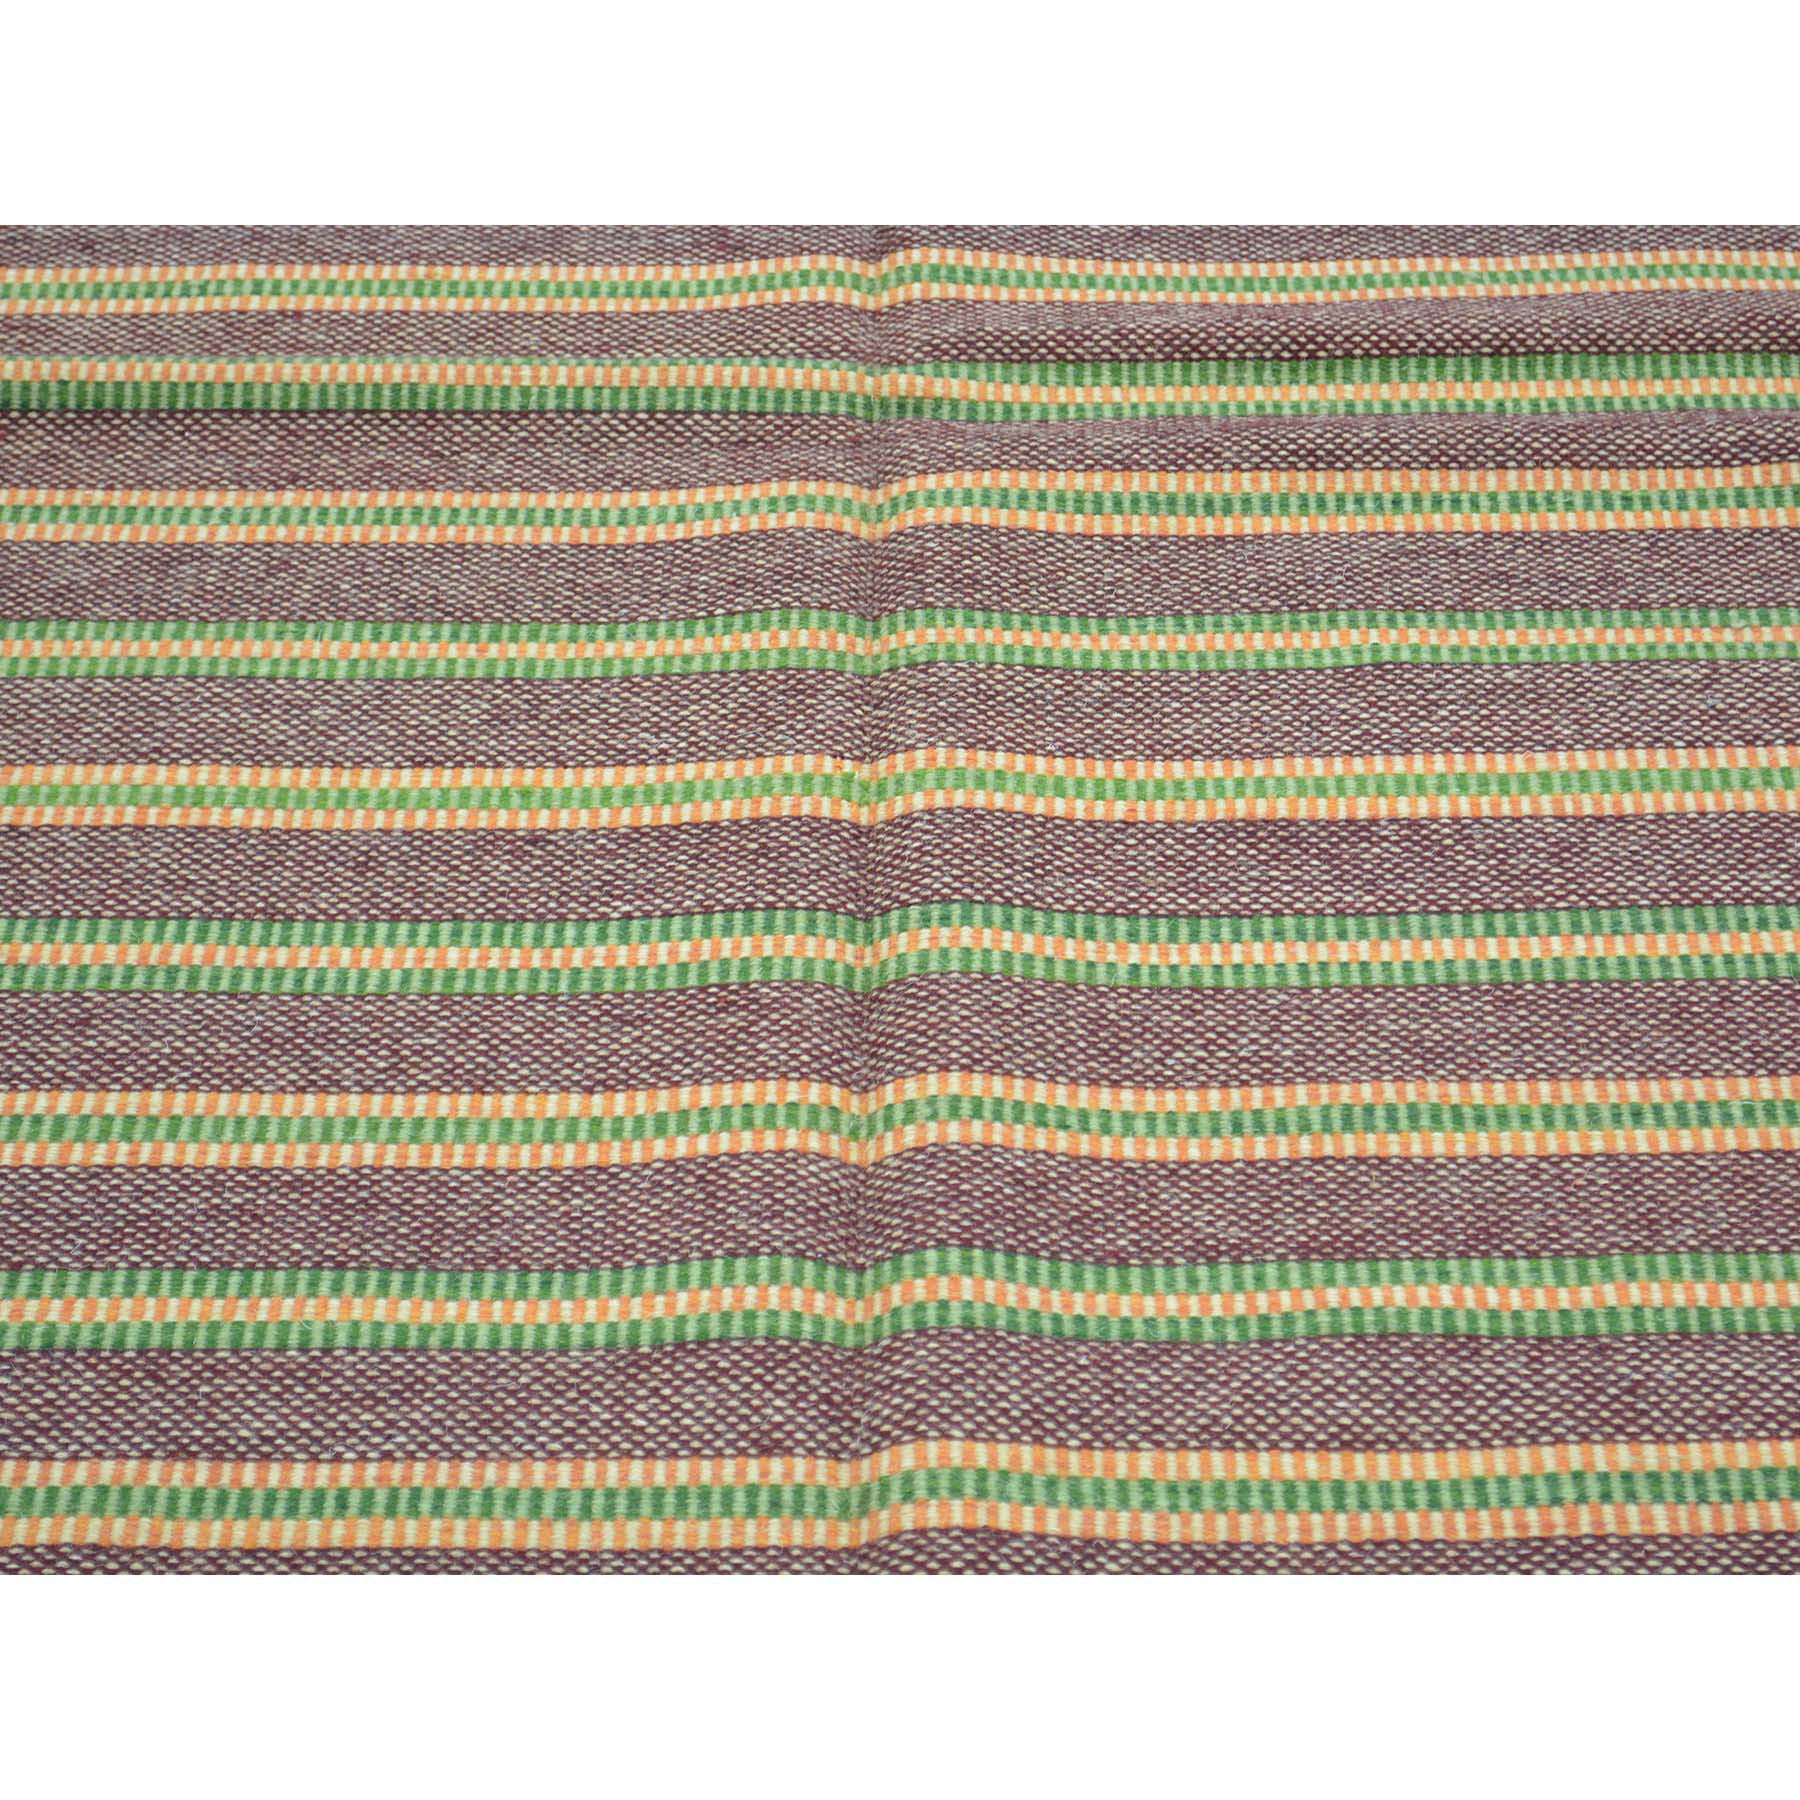 "Handmade Flat Weave Rectangle Rug > Design# SH30121 > Size: 4'-5"" x 6'-6"" [ONLINE ONLY]"